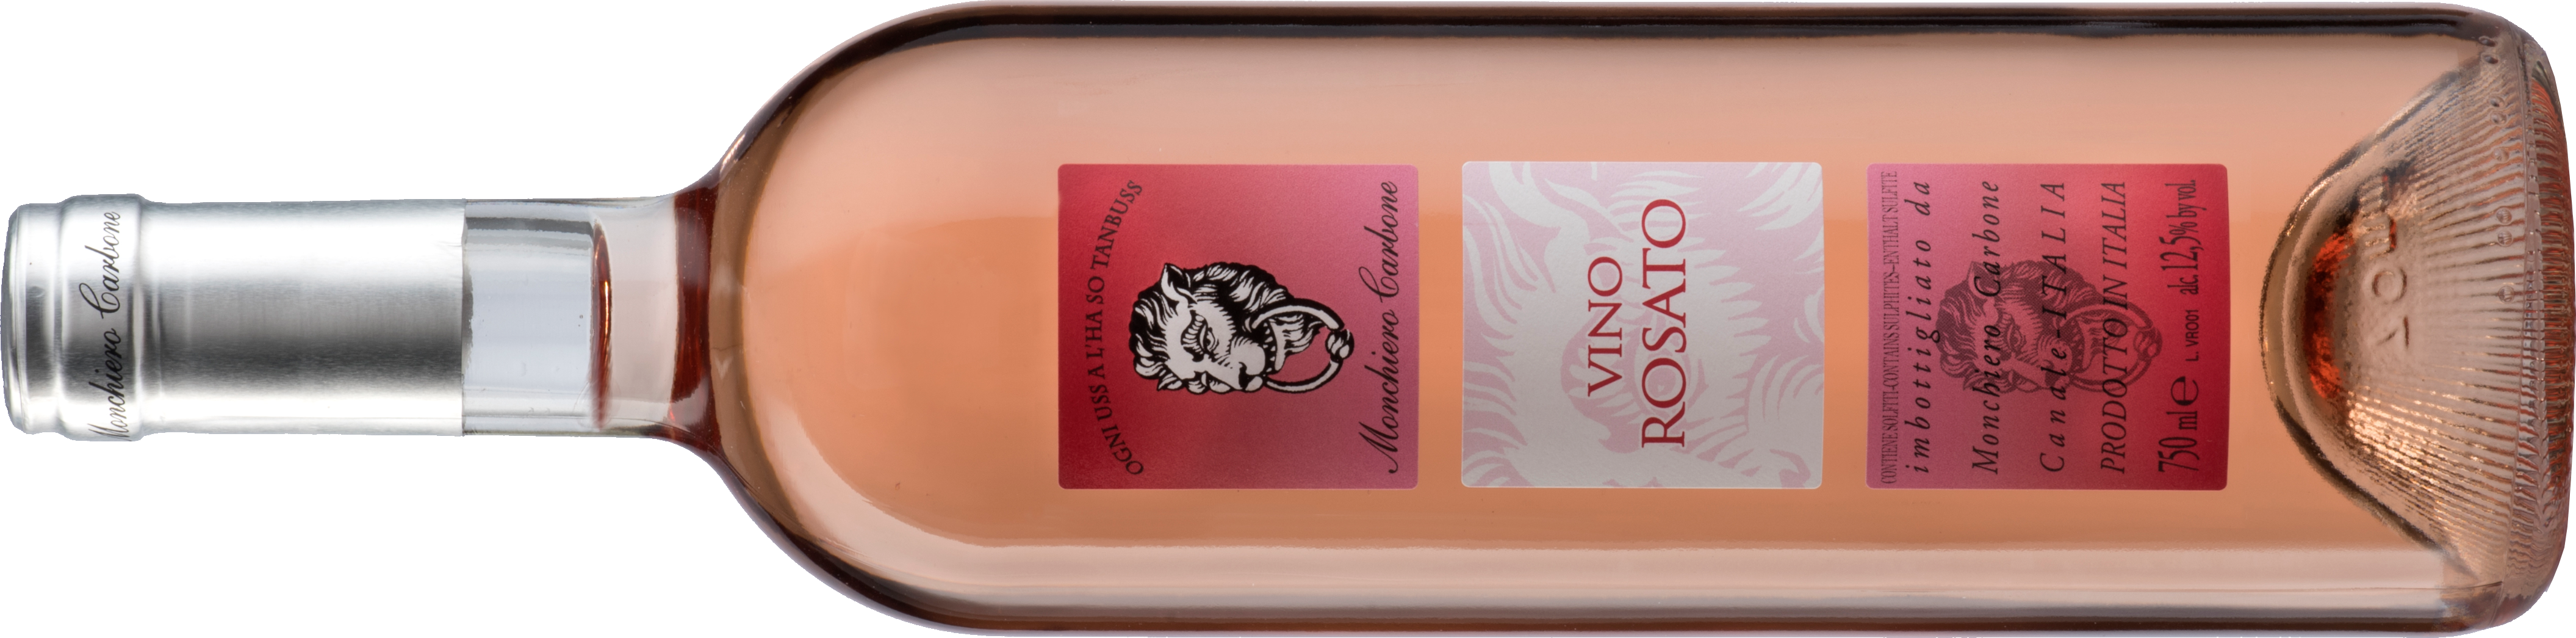 Vino Rosato lying down bottle